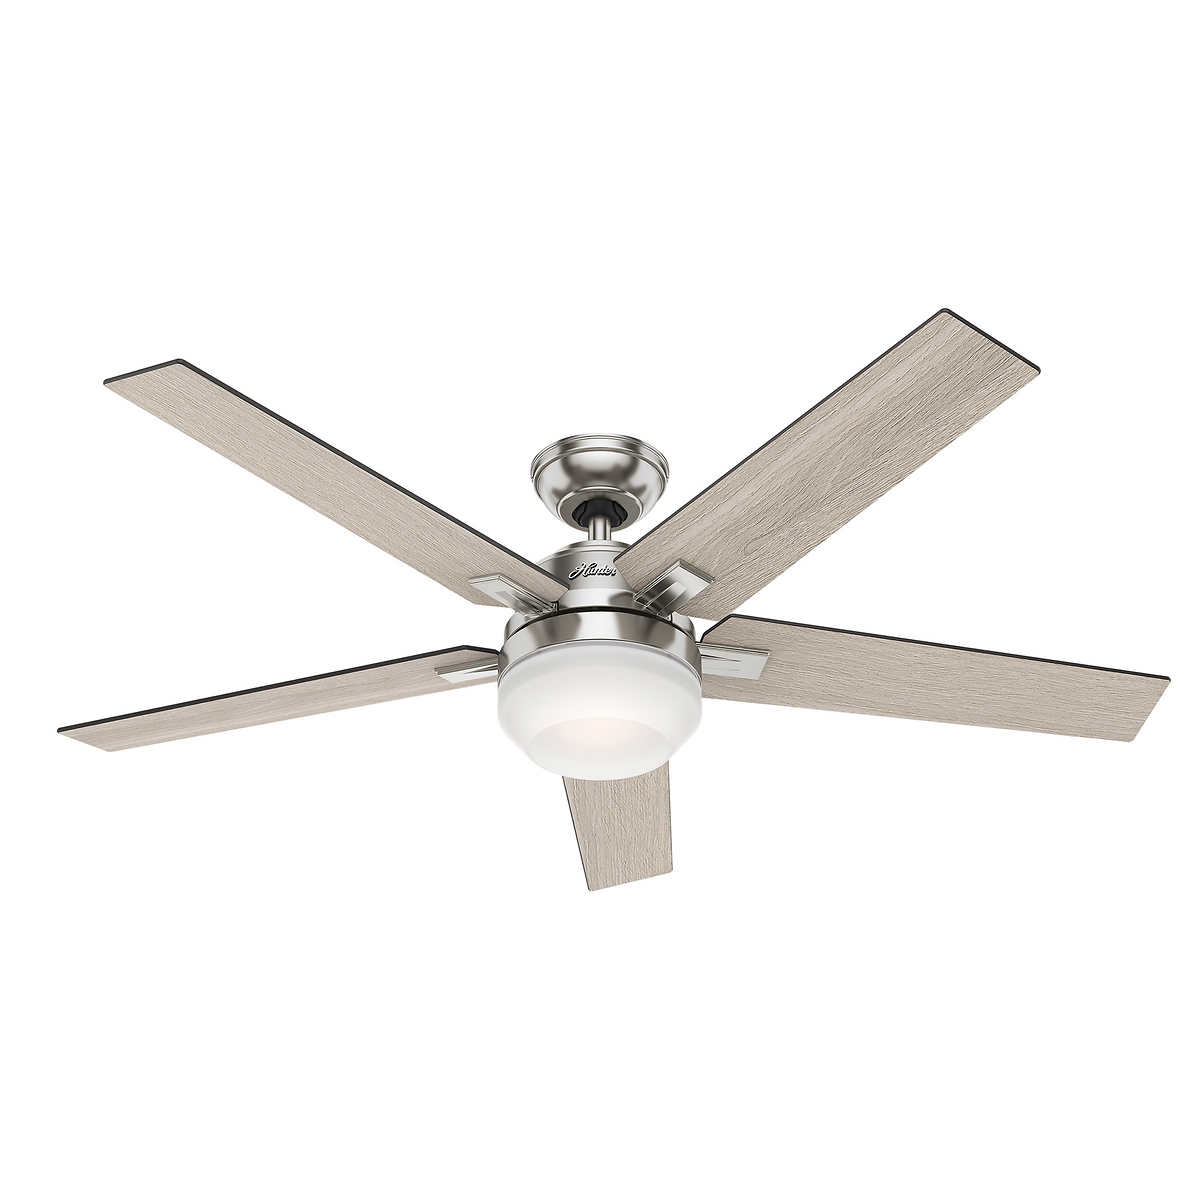 utilitech at with exhaust shop heater design lens pictures decor about ceiling home best collection costco fan innovation and bathroom ideas light awesome interior skillful fans